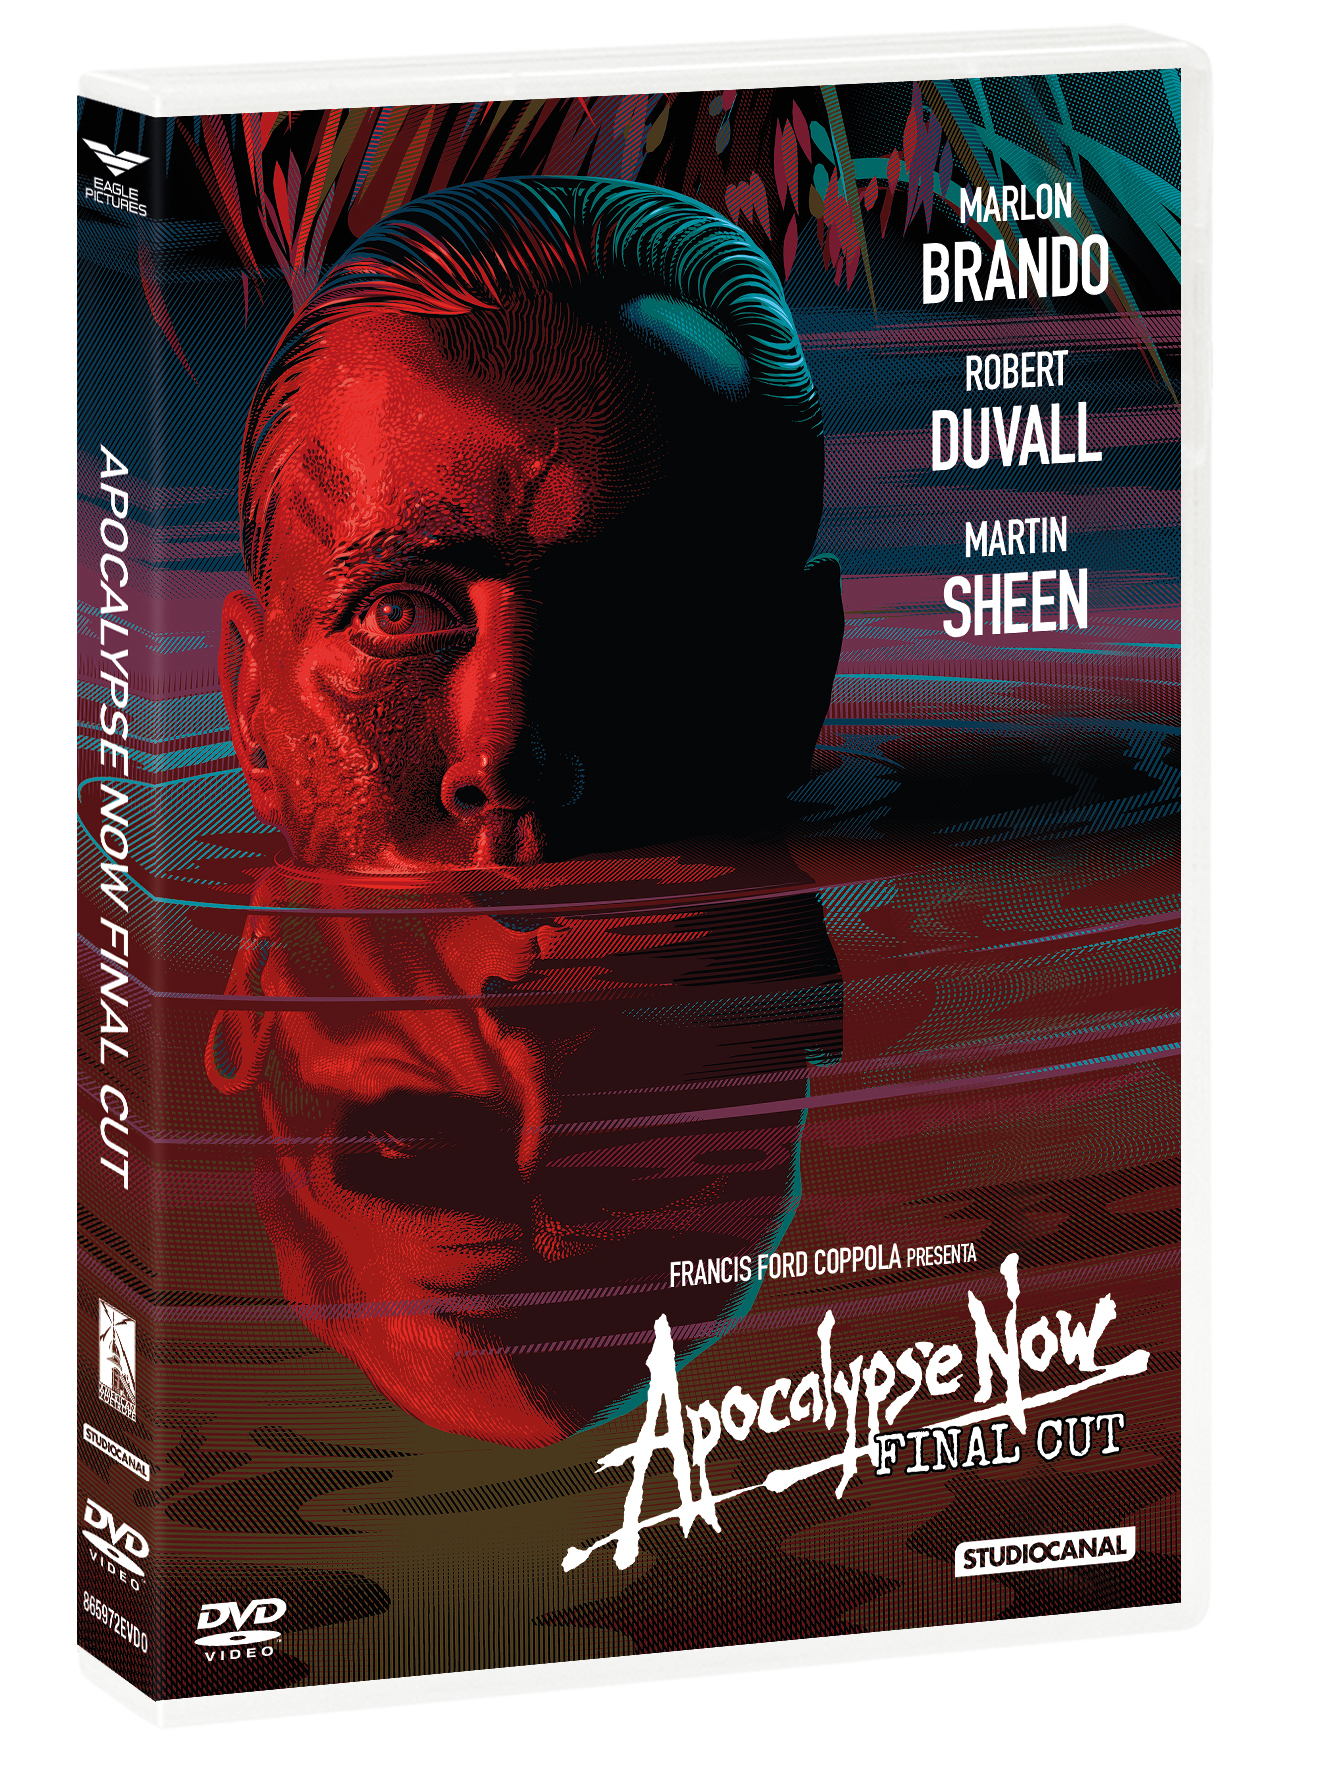 APOCALYPSE NOW FINAL CUT (DVD+CALENDARIO 2021) (DVD)